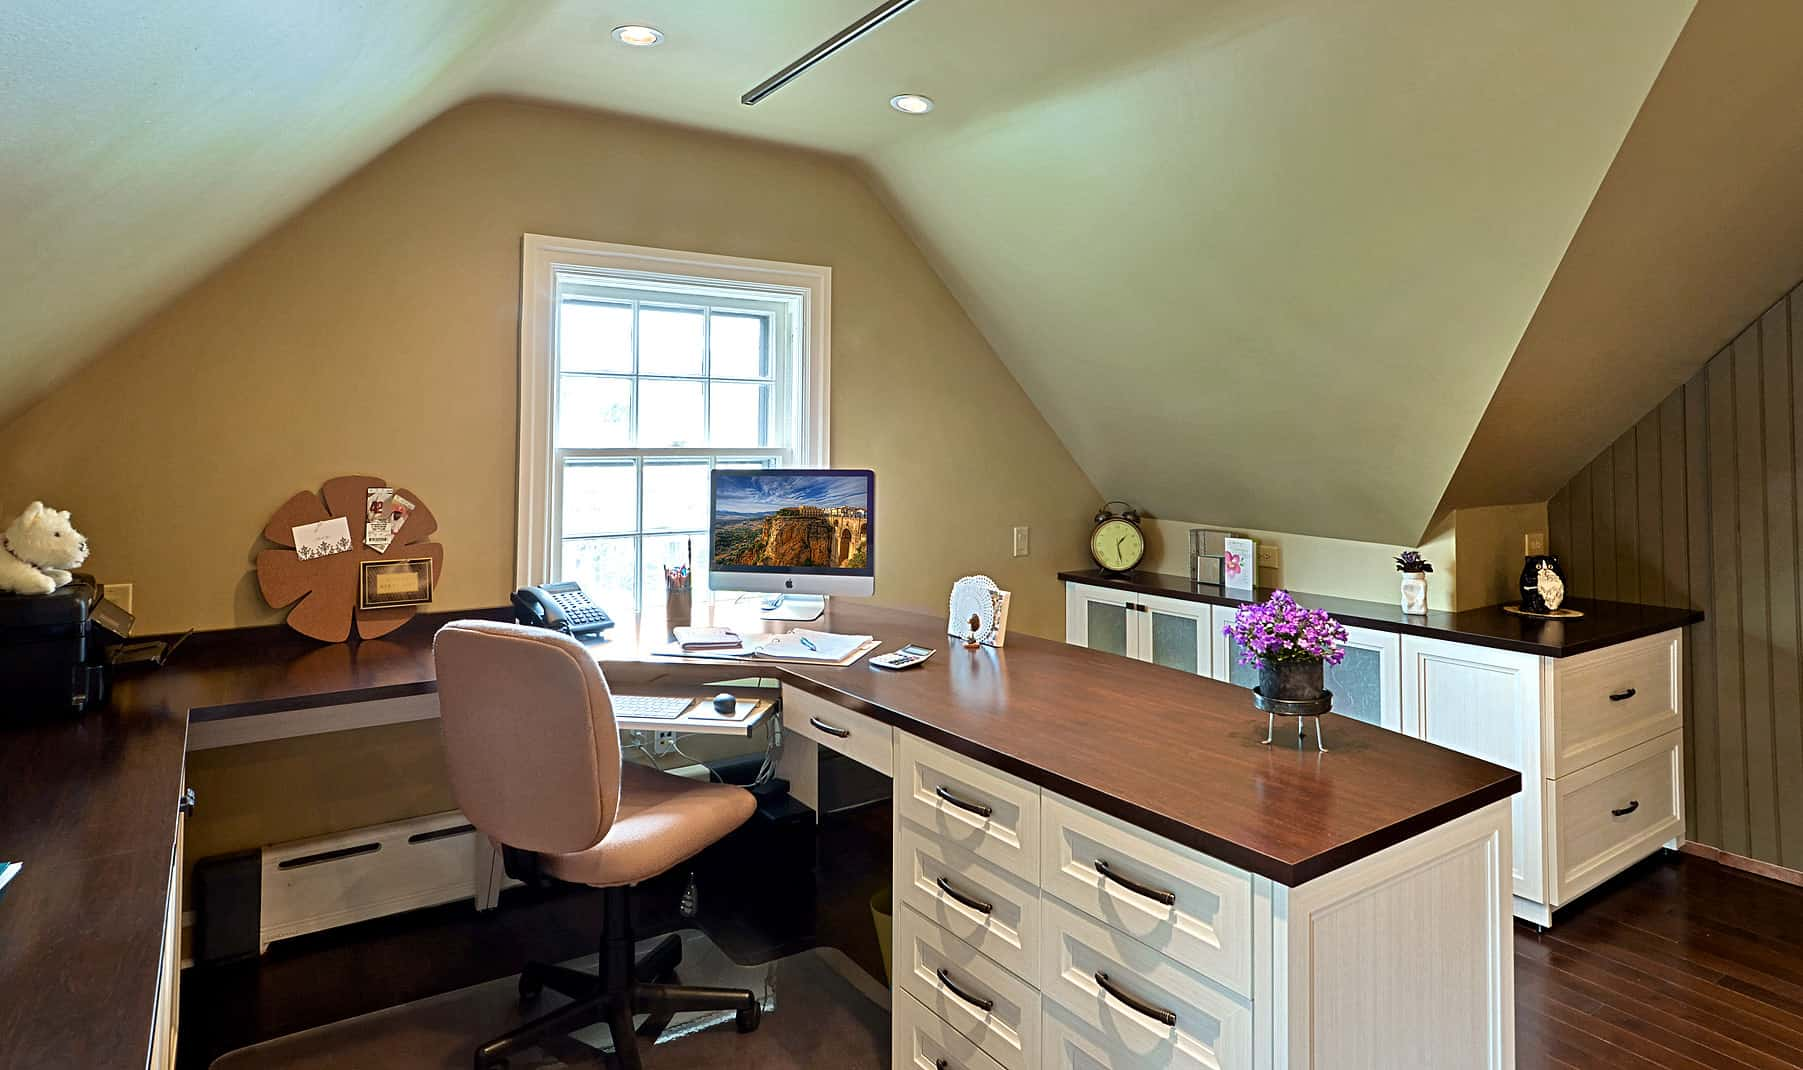 Who says an attic can't be a beautiful home office? Here's an example of how you can turn seemingly unusable attic space into a highly effective and attractive home office.